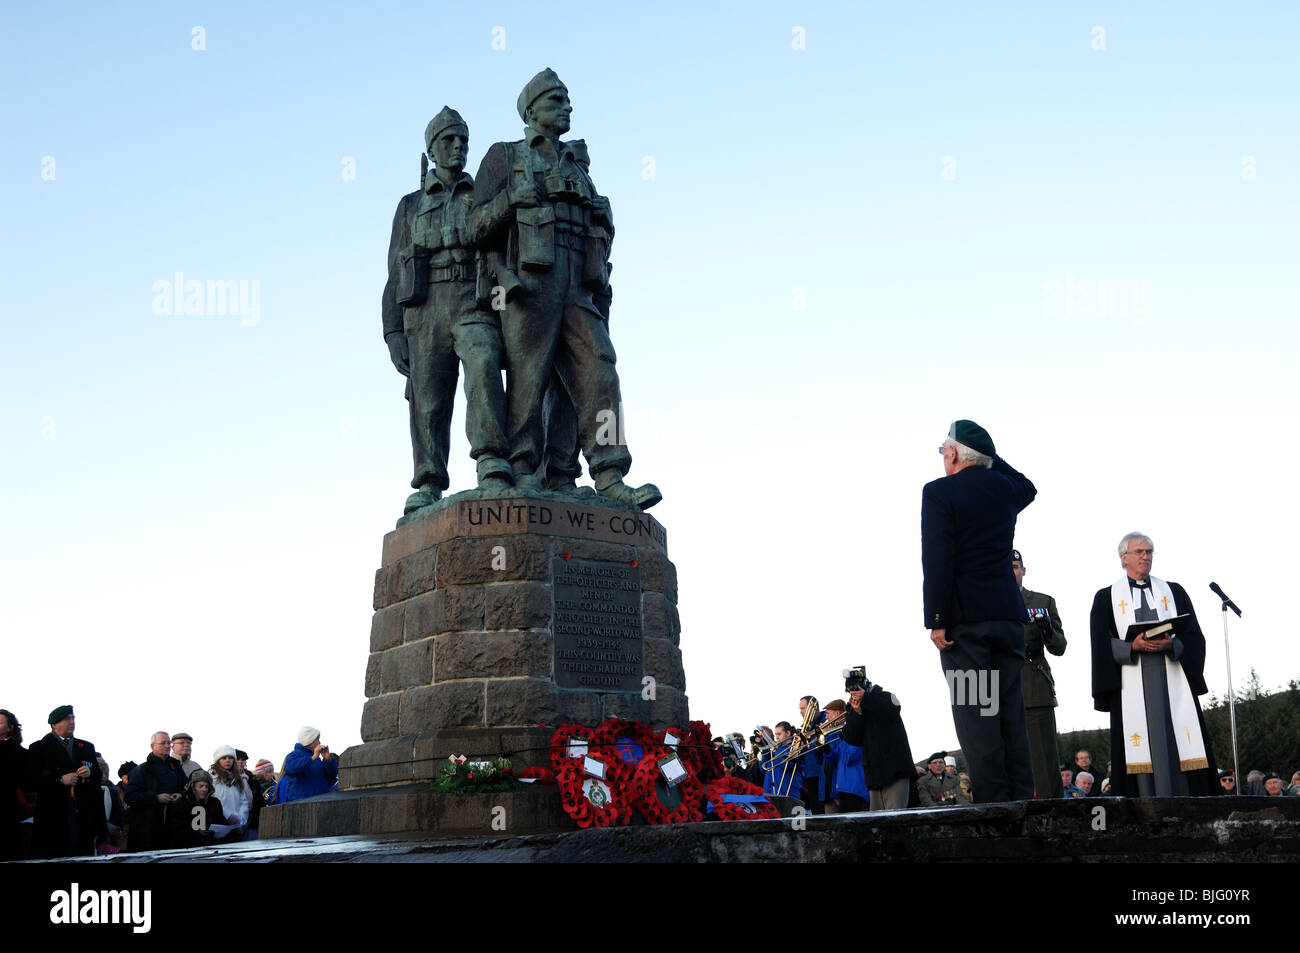 Annual remembrance day service held at the commando memorial spean bridge,highlands,Scotland - Stock Image